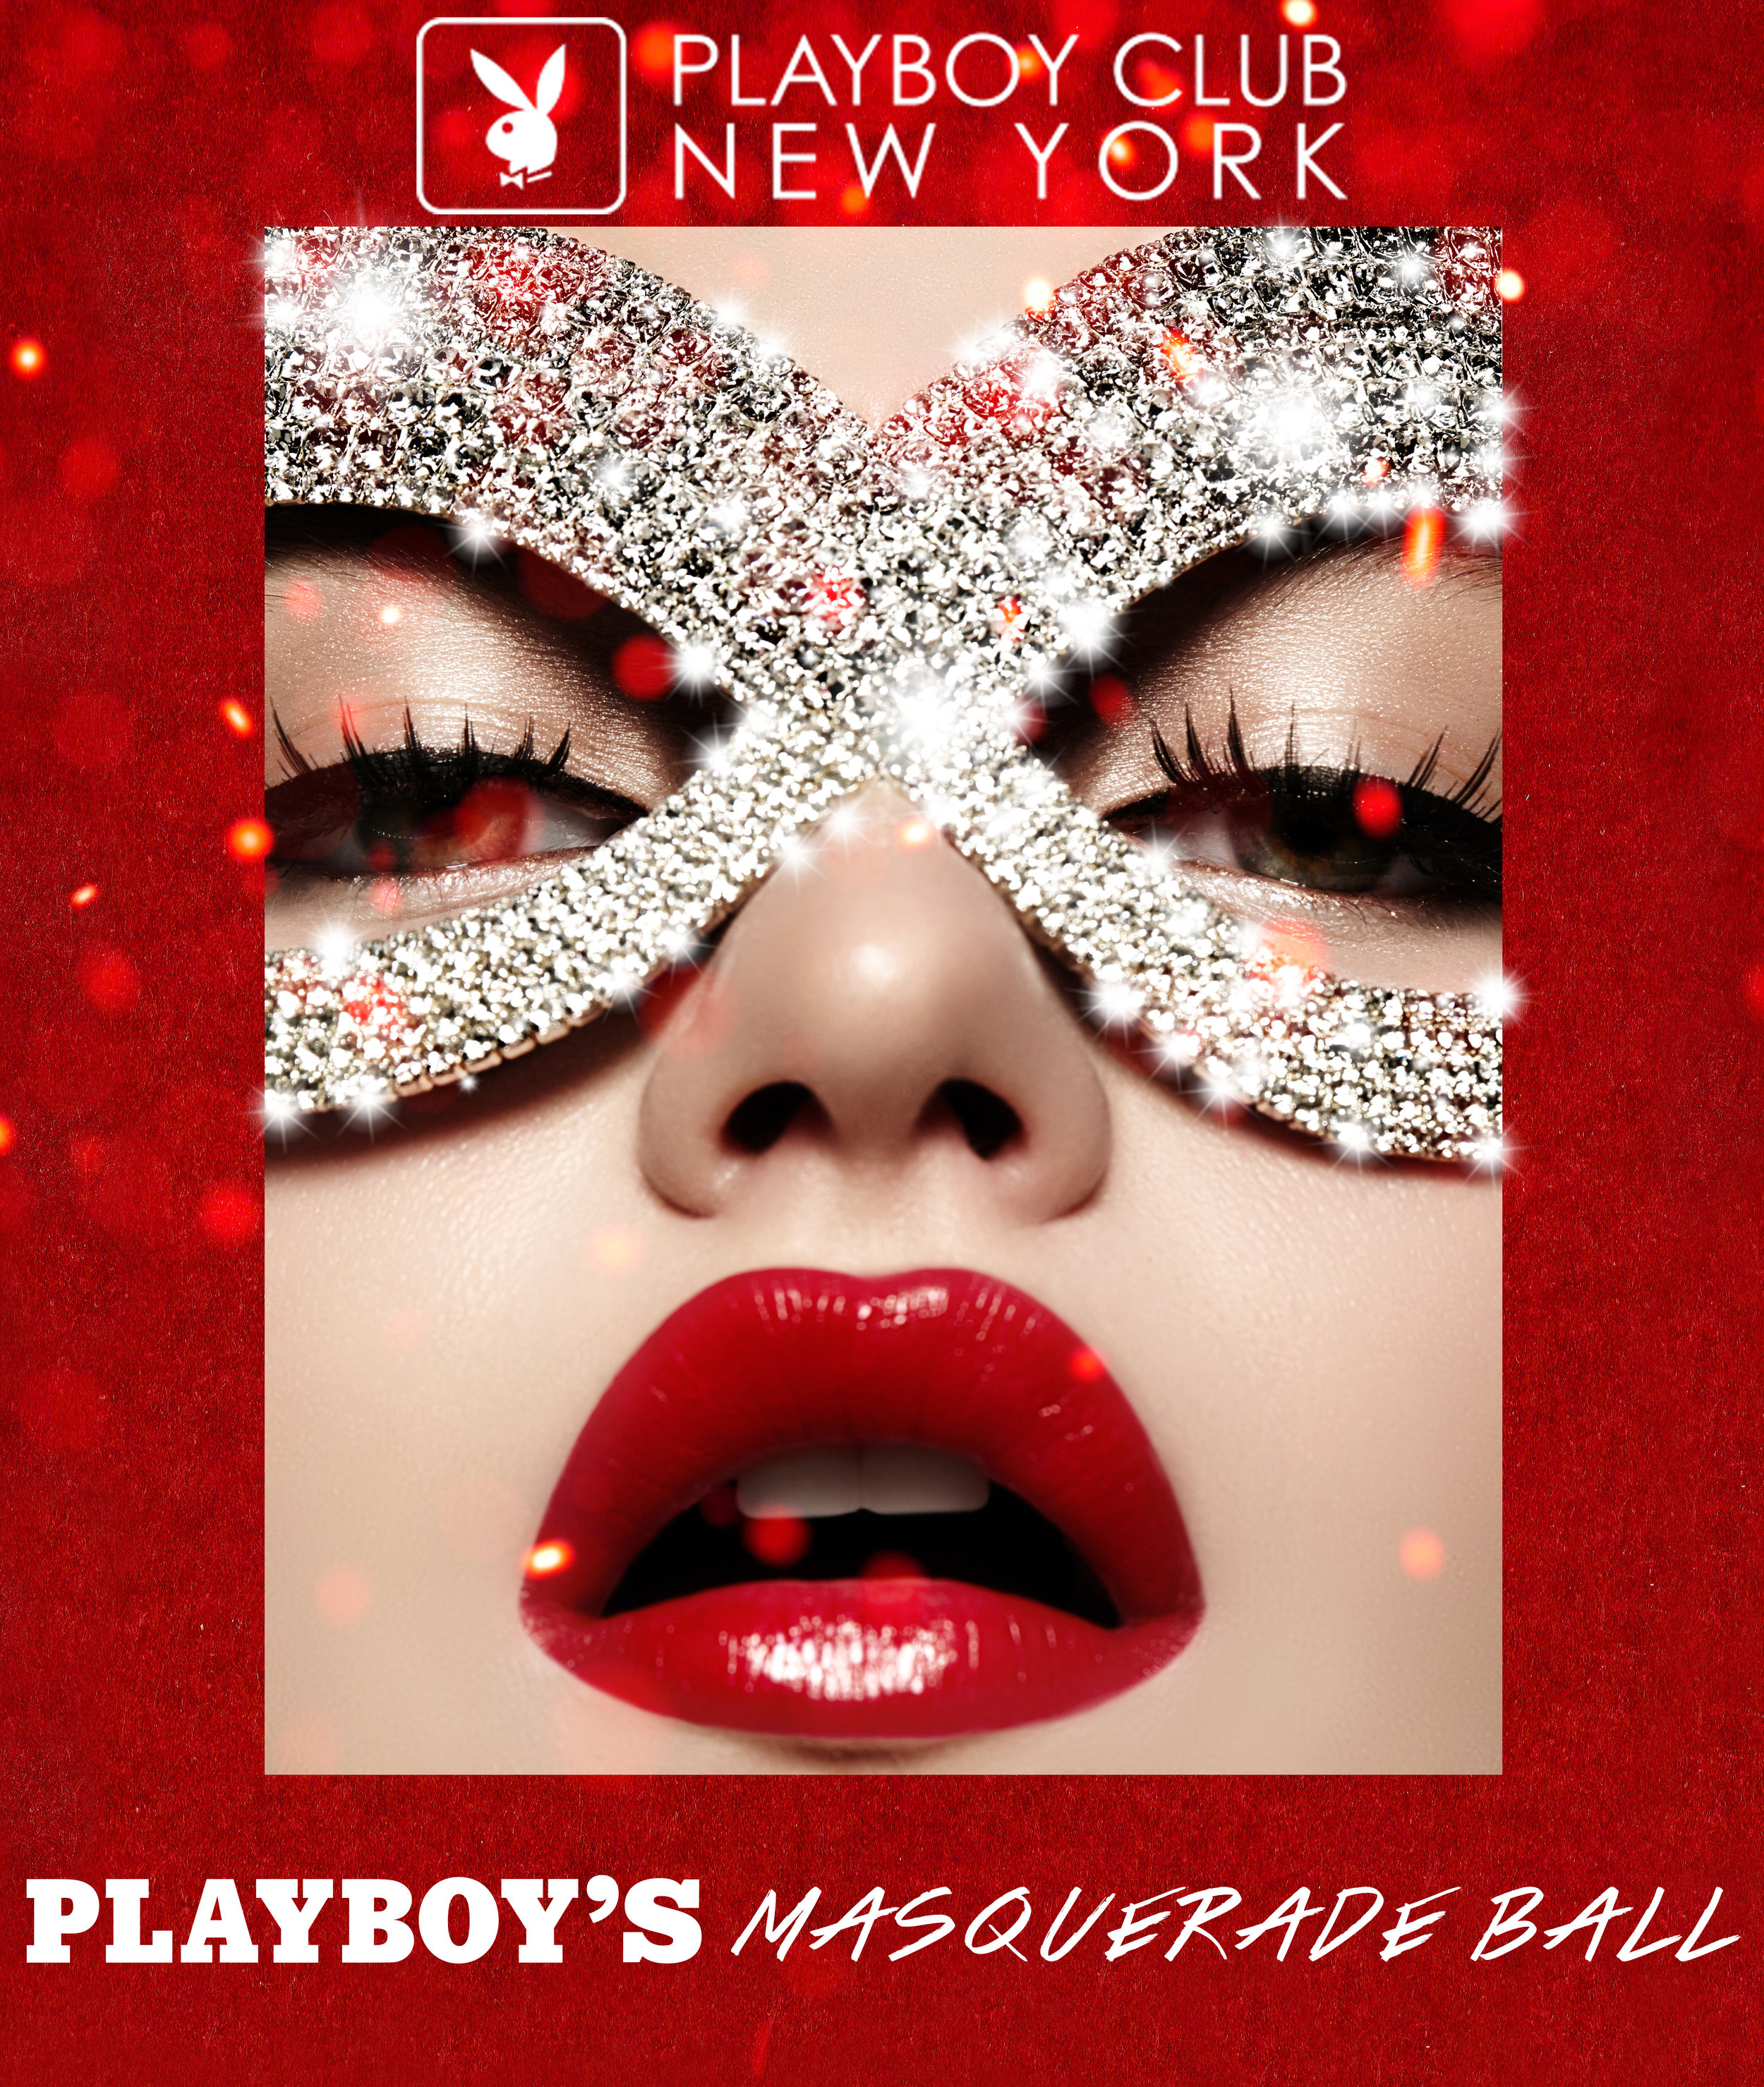 Playboy's Masquerade at Playboy Club New York.jpg